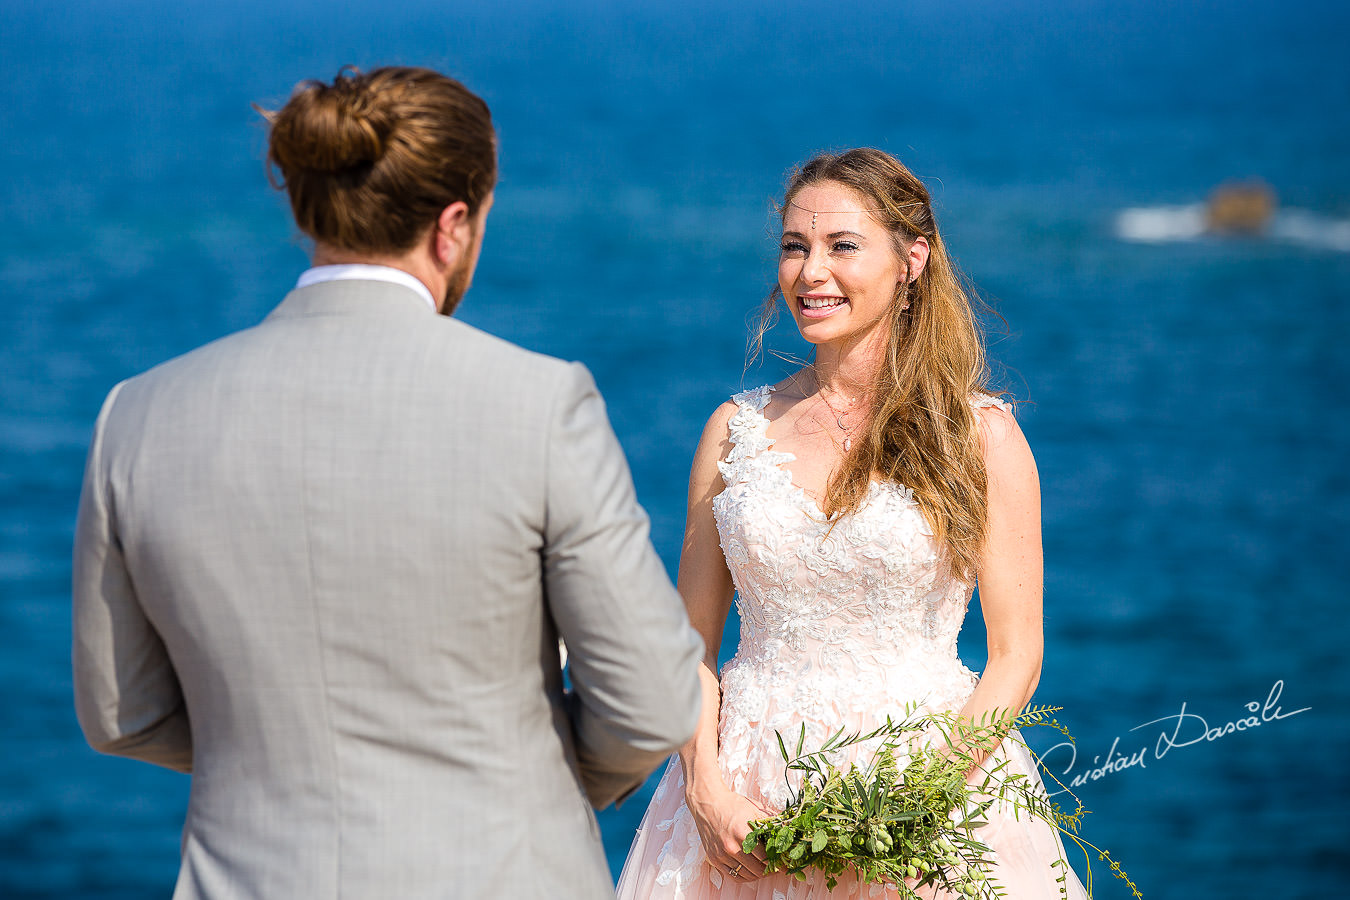 The bride and groom changing vows, moments captured by Cyprus Wedding Photographer Cristian Dascalu.